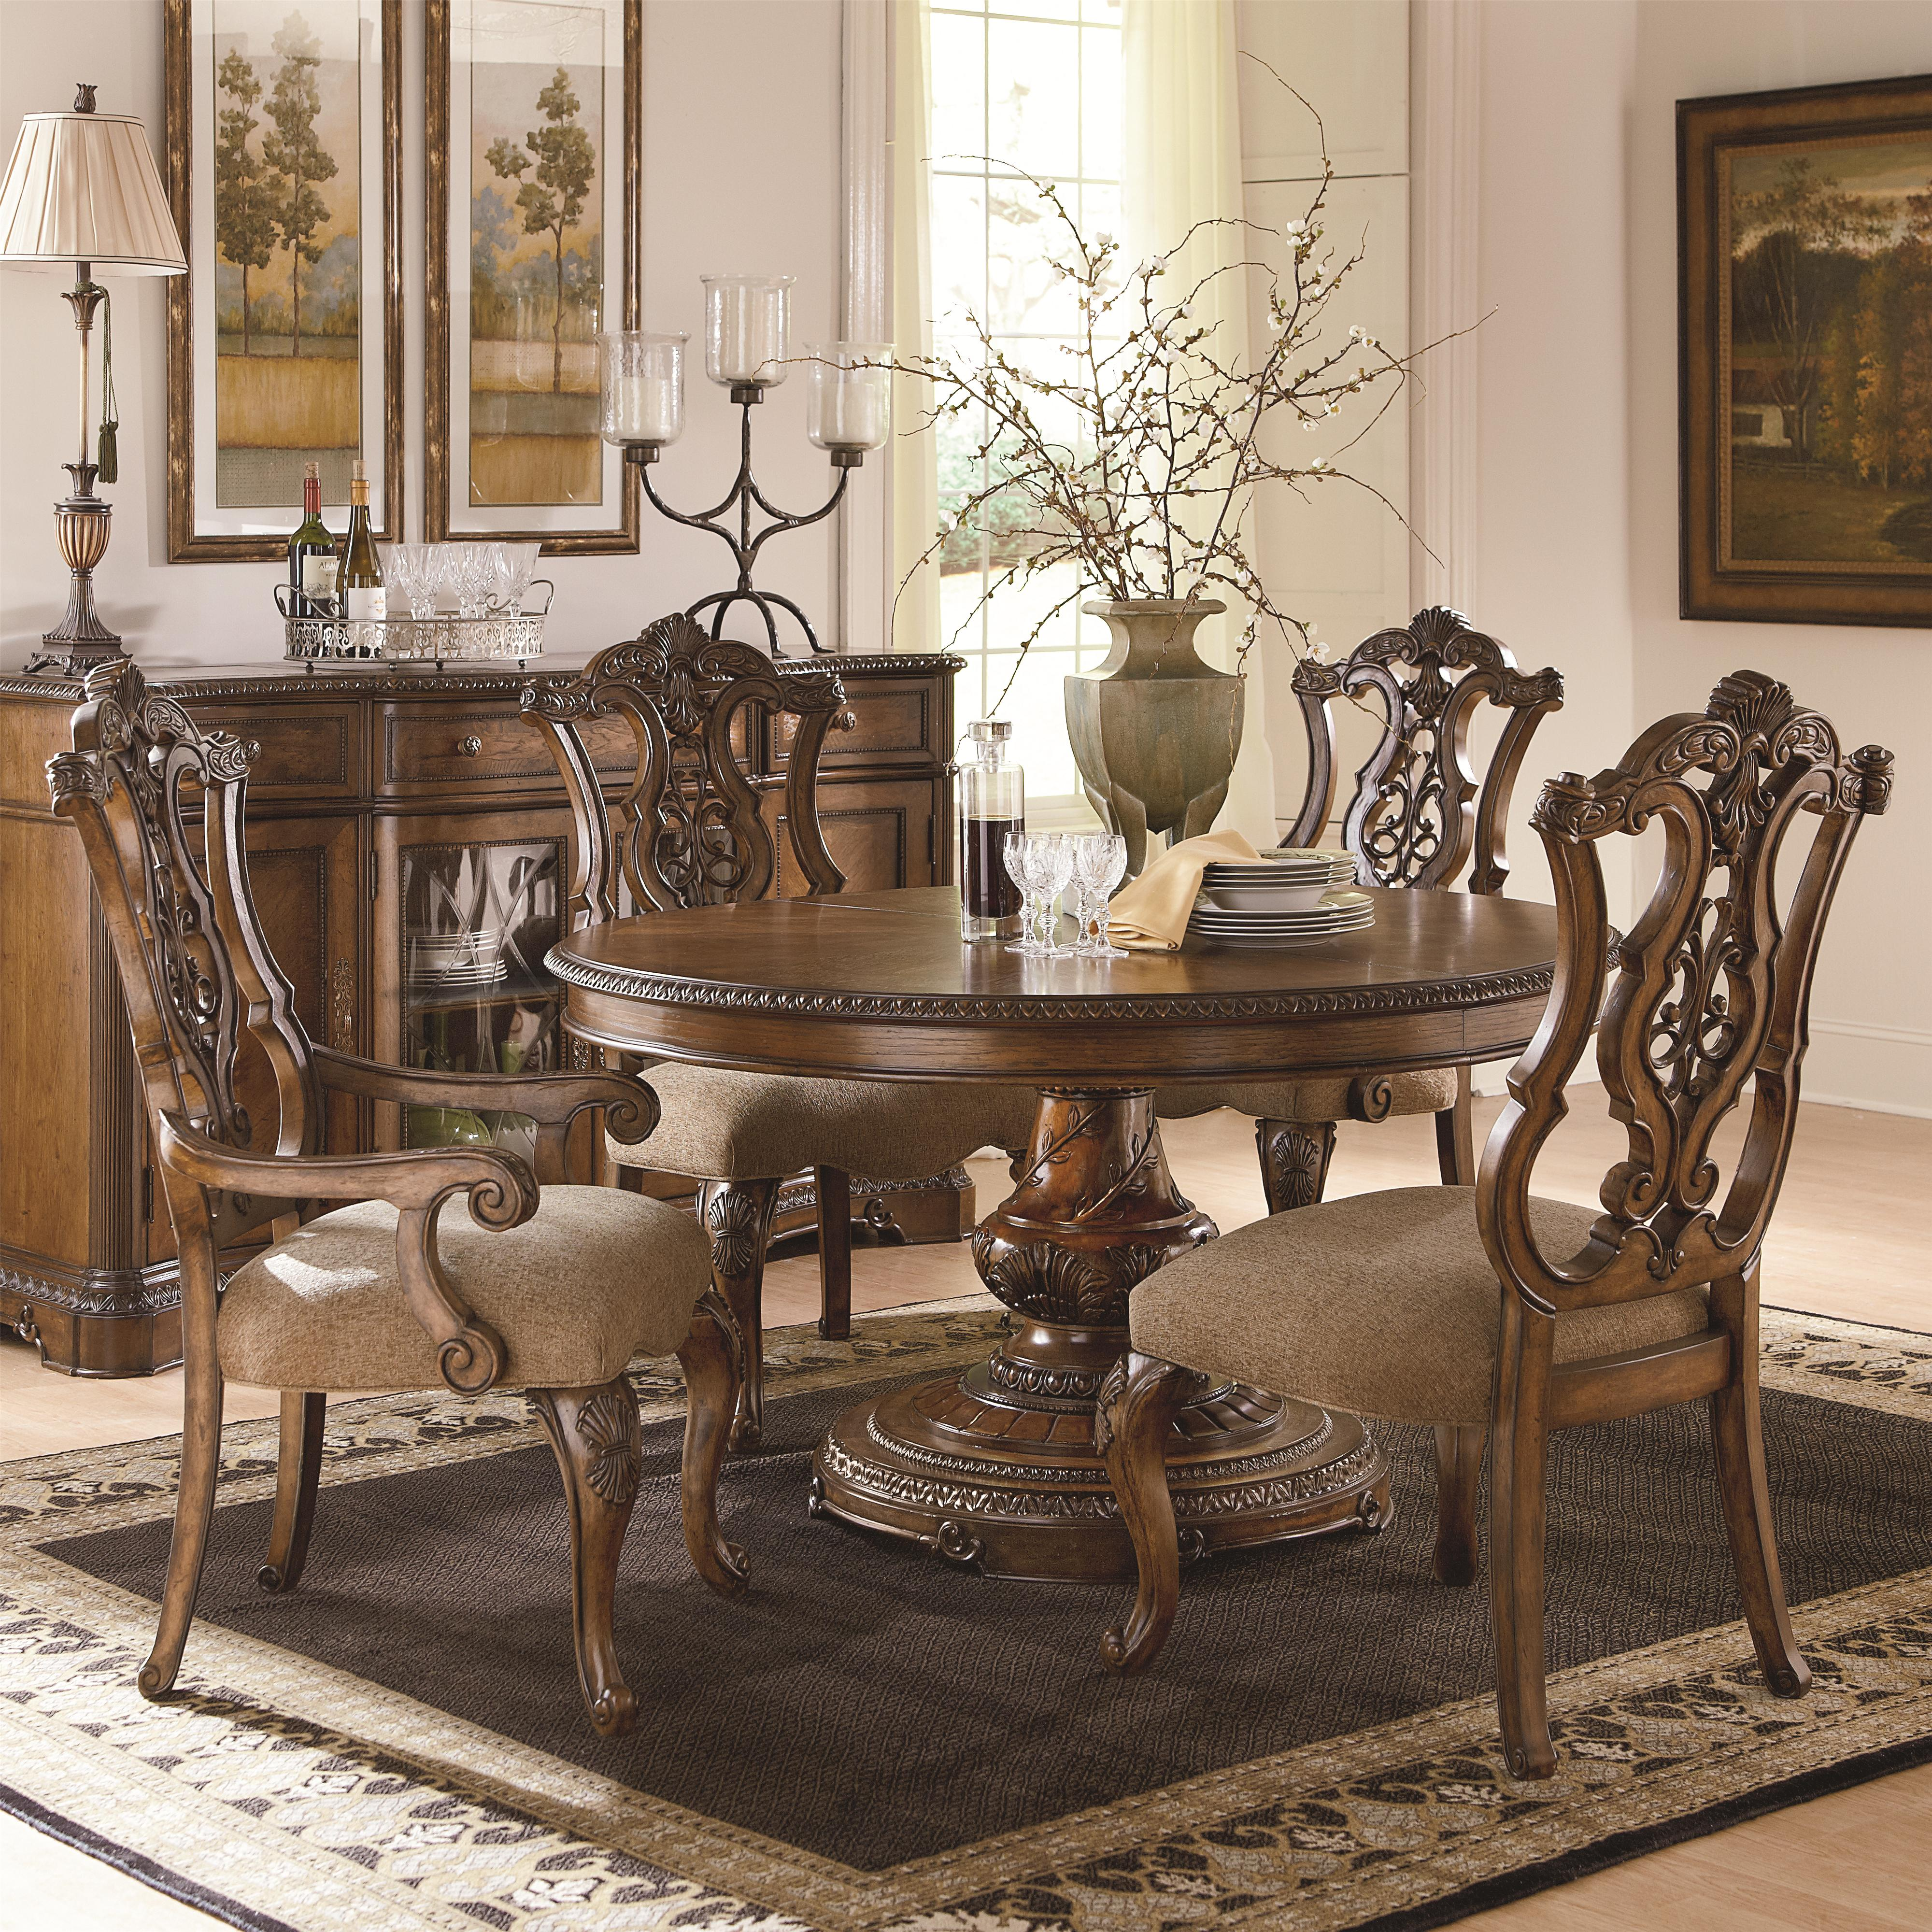 Legacy Classic Pemberleigh 5 Piece Table and Chairs Set - Item Number: 3100-521K+2x140 KD+2x141 KD